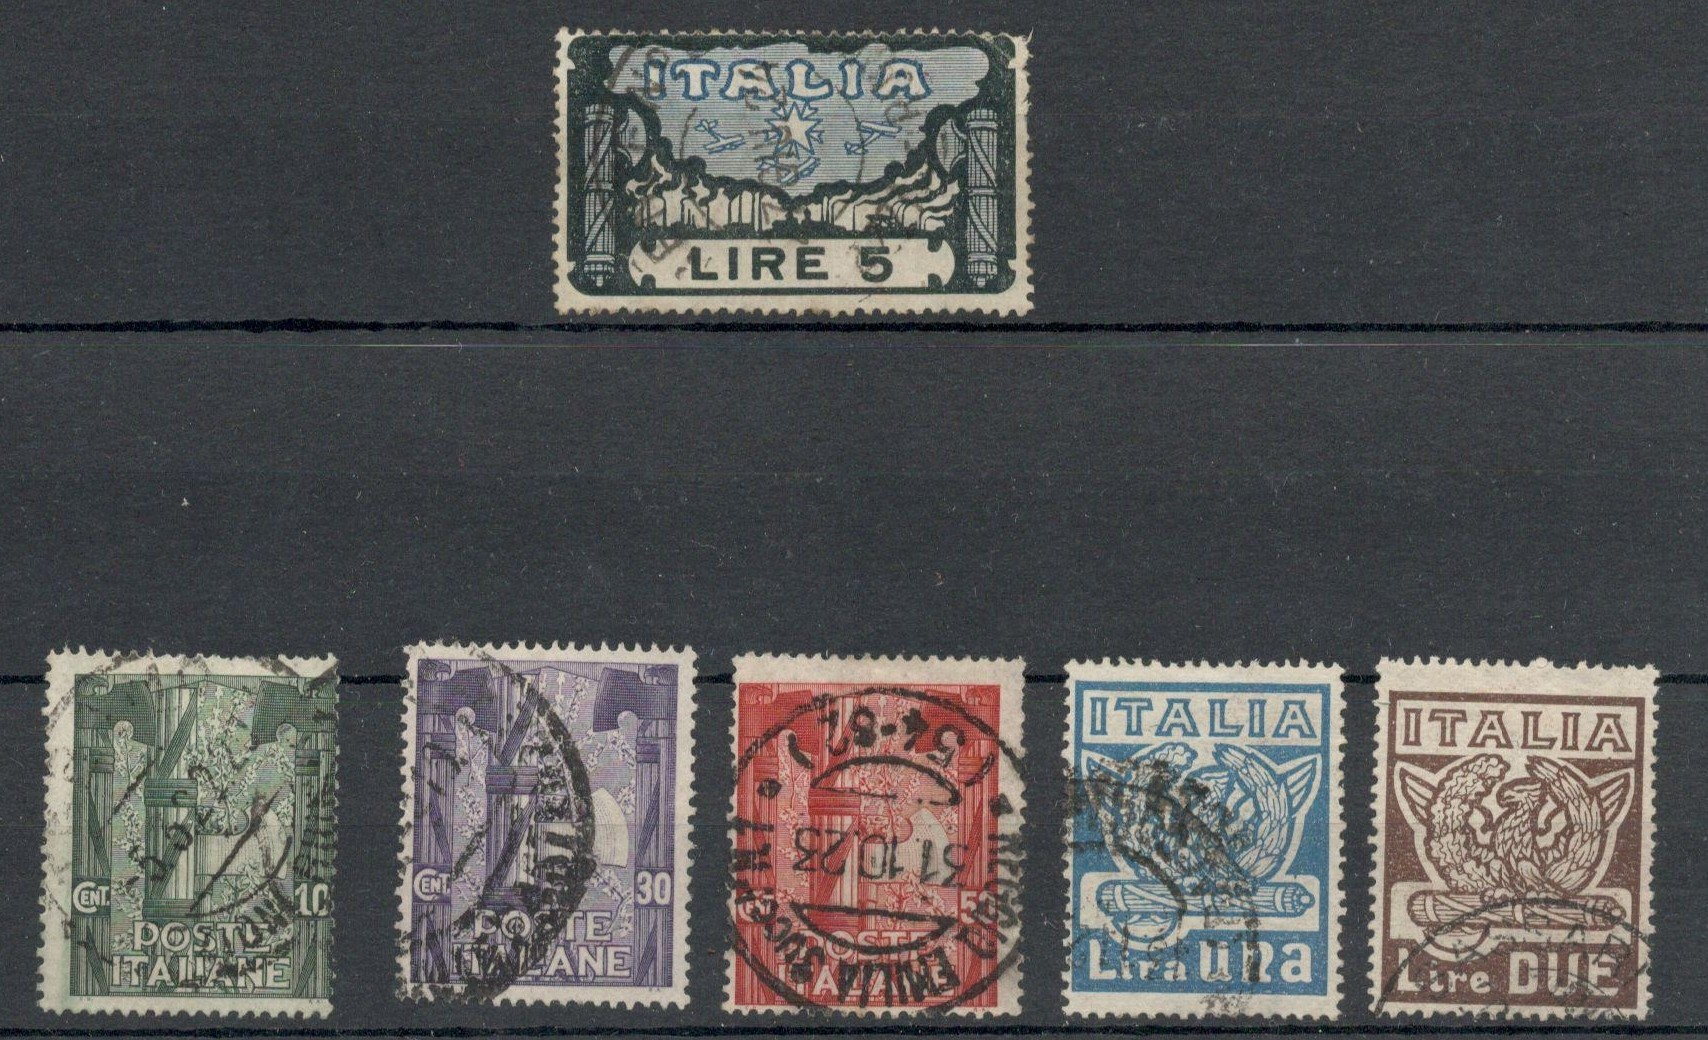 ITALY 1923 ANNIVERSARY OF THE MARCH OF THE FASCIST ON ROME - USED